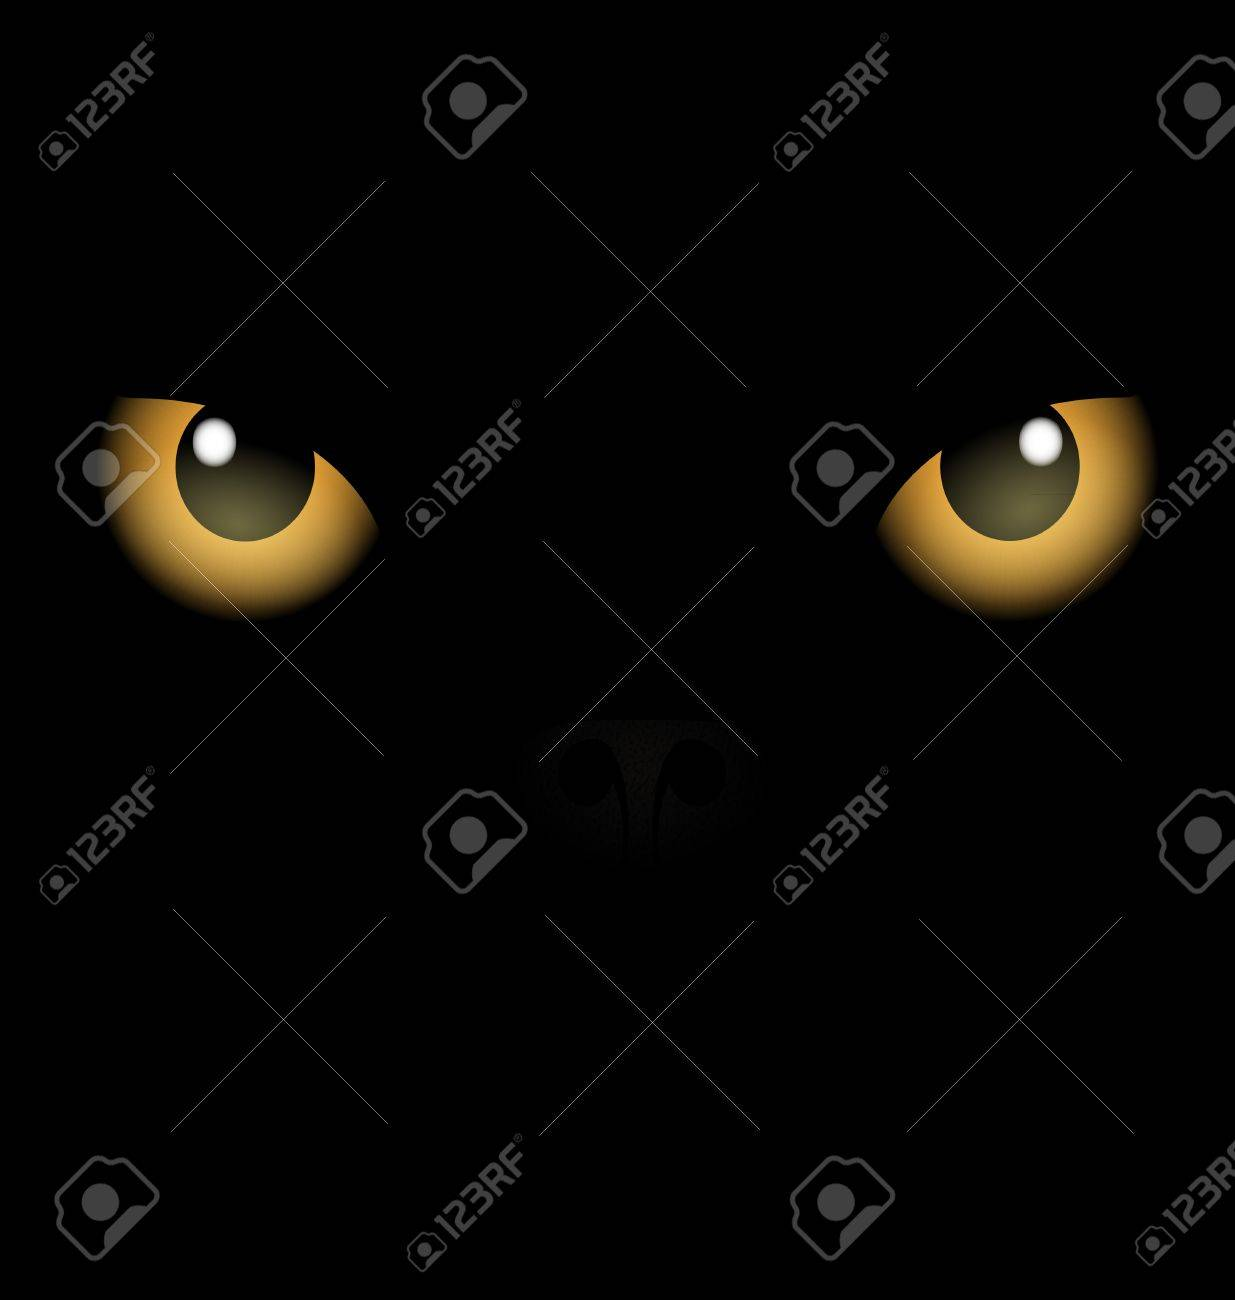 black background yellow eyes Stock Vector - 10802401